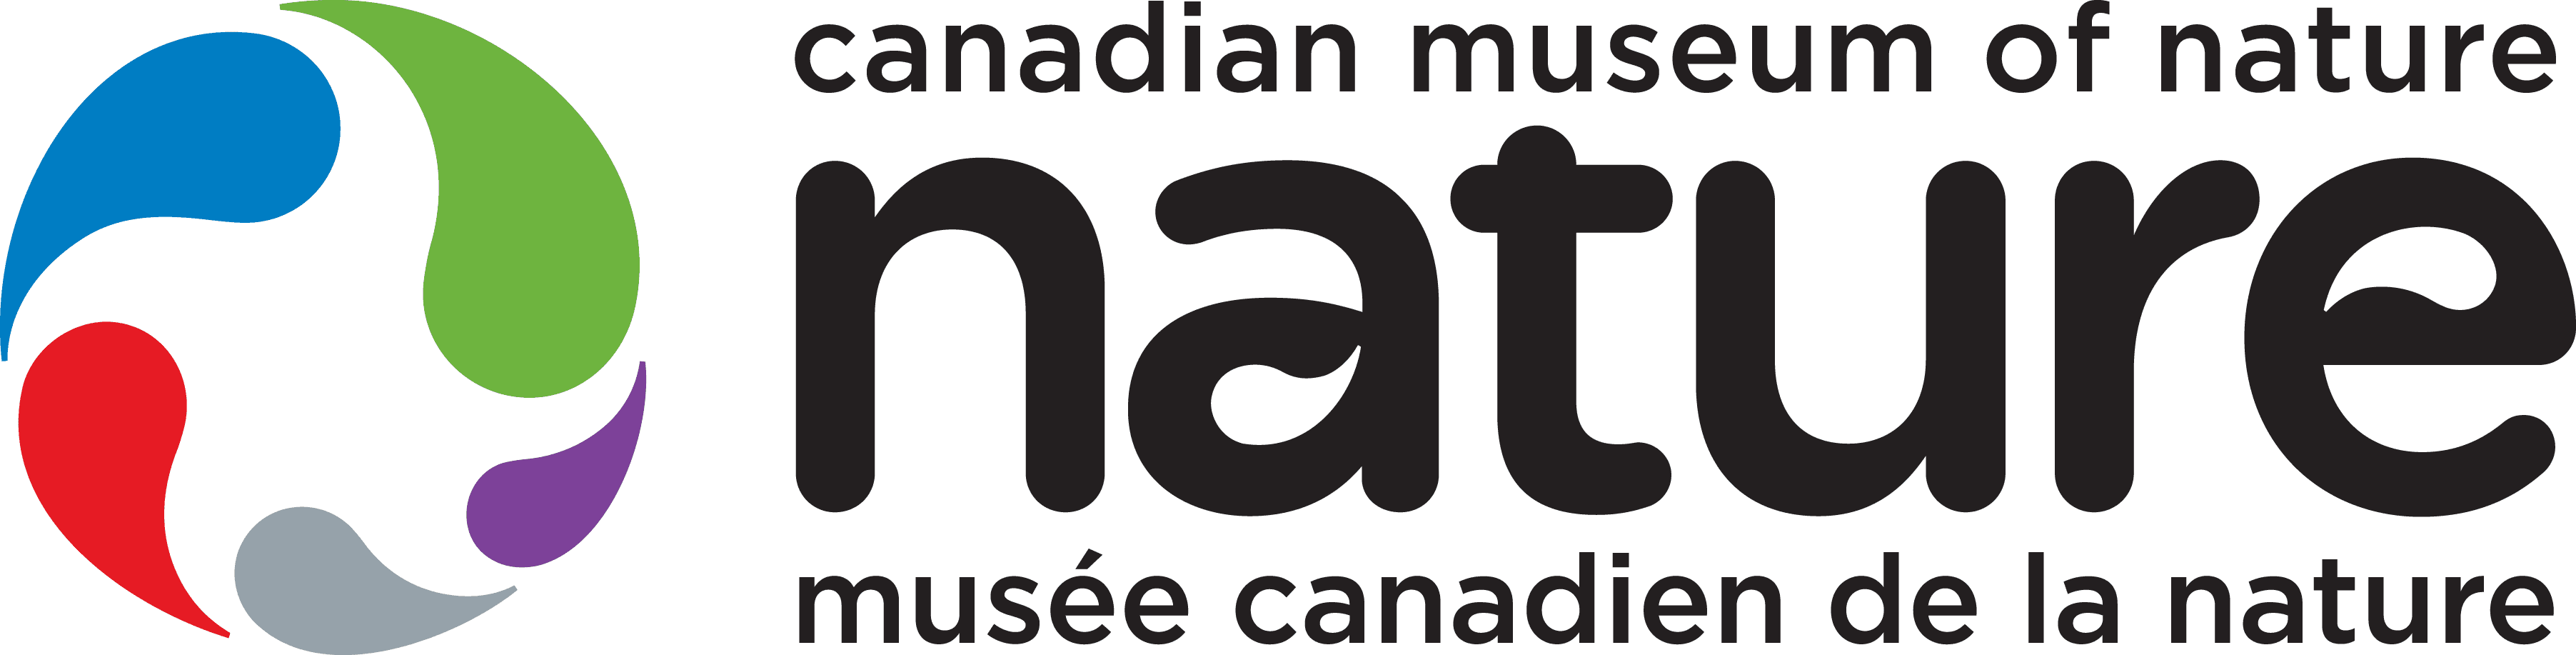 Canadian Museum of Nature | Musée Canadien de la Nature